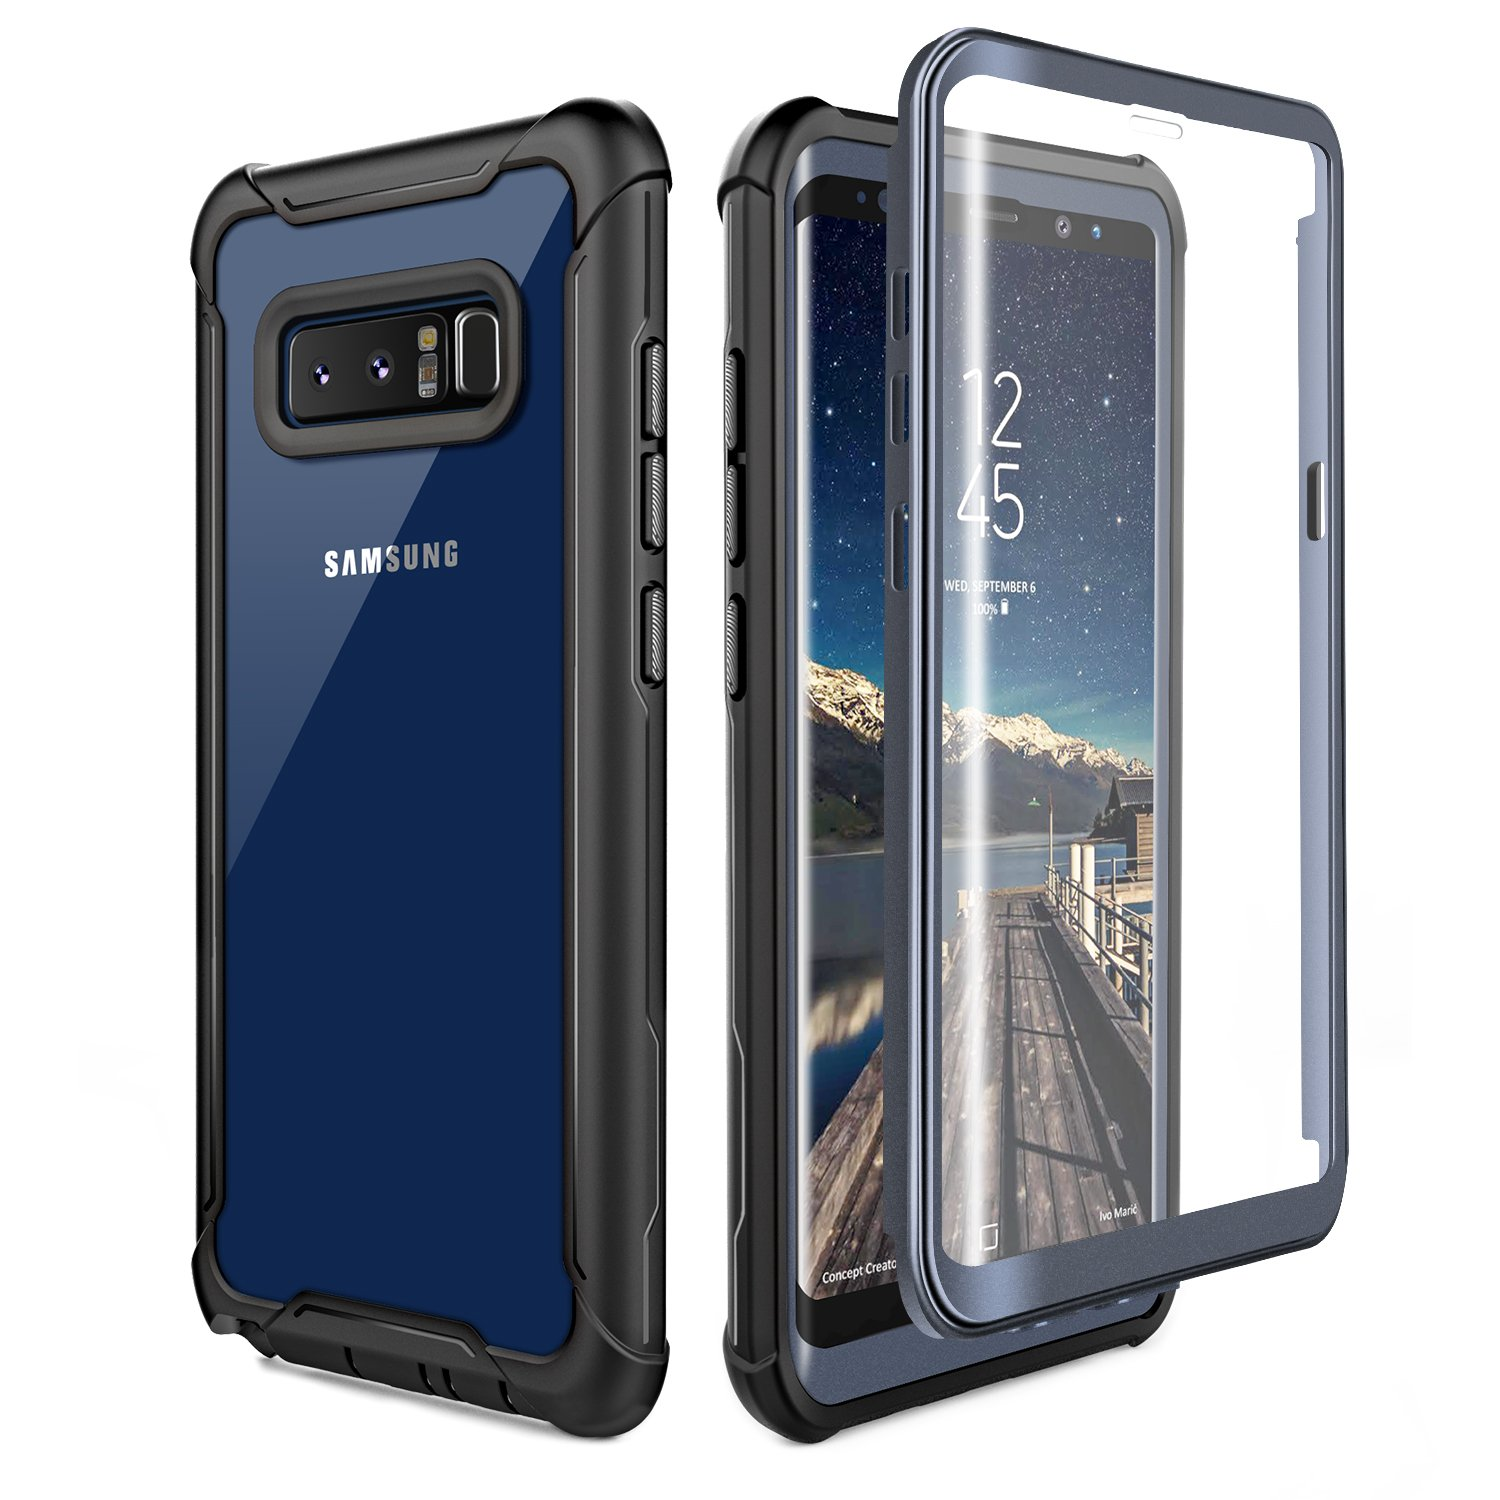 Samsung Galaxy Note 8 Cell Phone Case - Ultra Thin Clear Cover with Built-in Anti-Scratch Screen Protector, Full Body Protective Shock Drop Proof Impact Resist Extreme Durable Case, Black/Grey by FITFORT